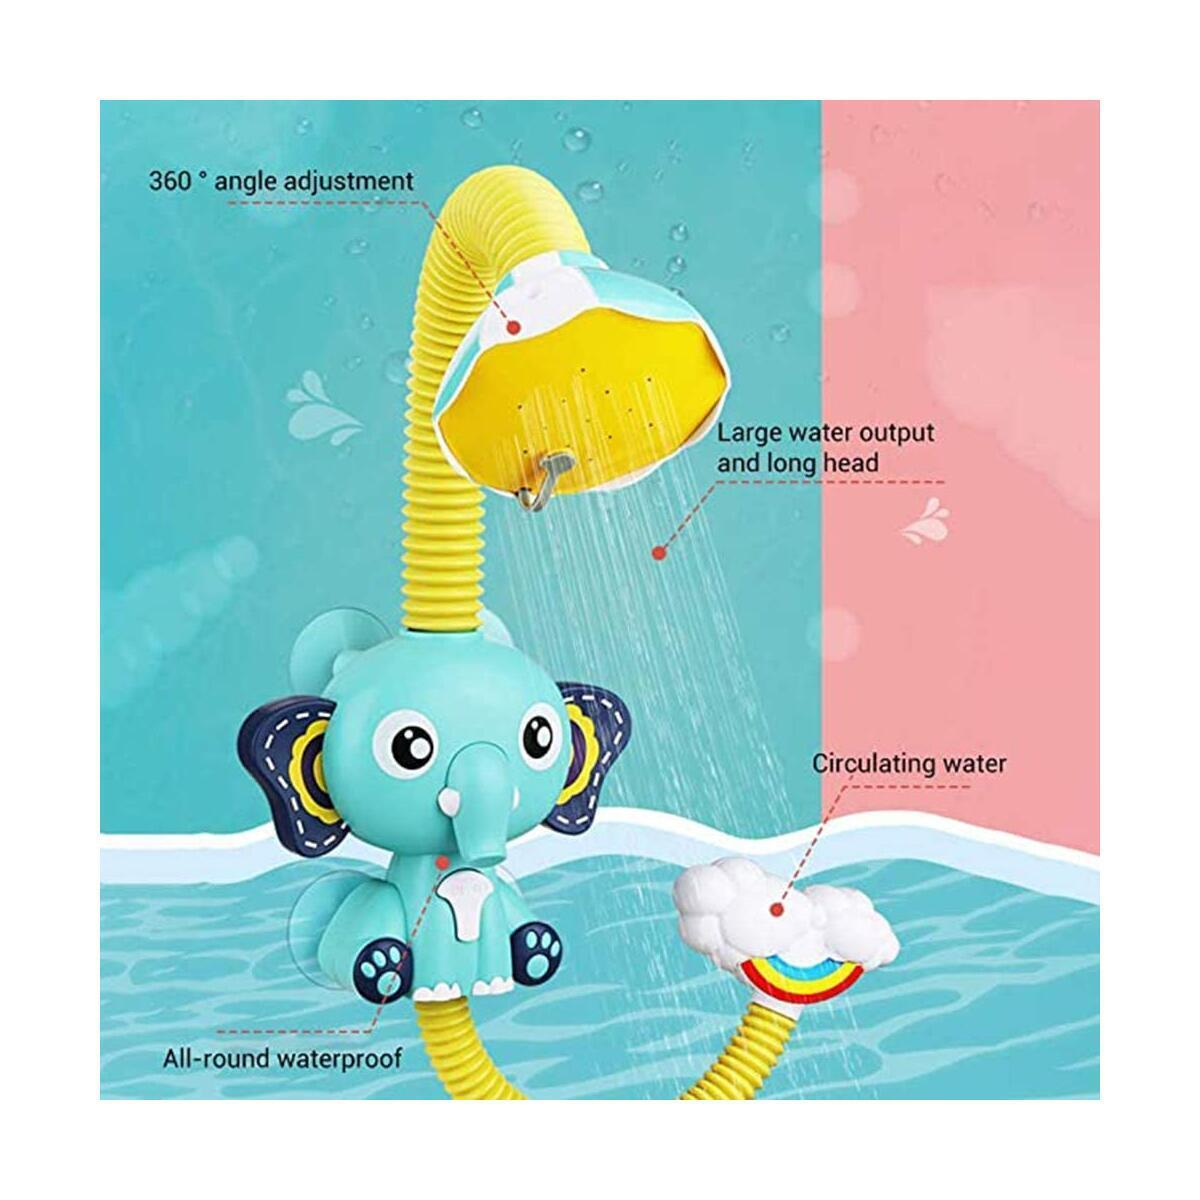 Baby Bath Shower Electric Shower - Toddler Bath Toy Require 4 X 1.5 V AAA (not included) Bathroom Toy with Four Suction Cups for Baby Infant Shower Elephant